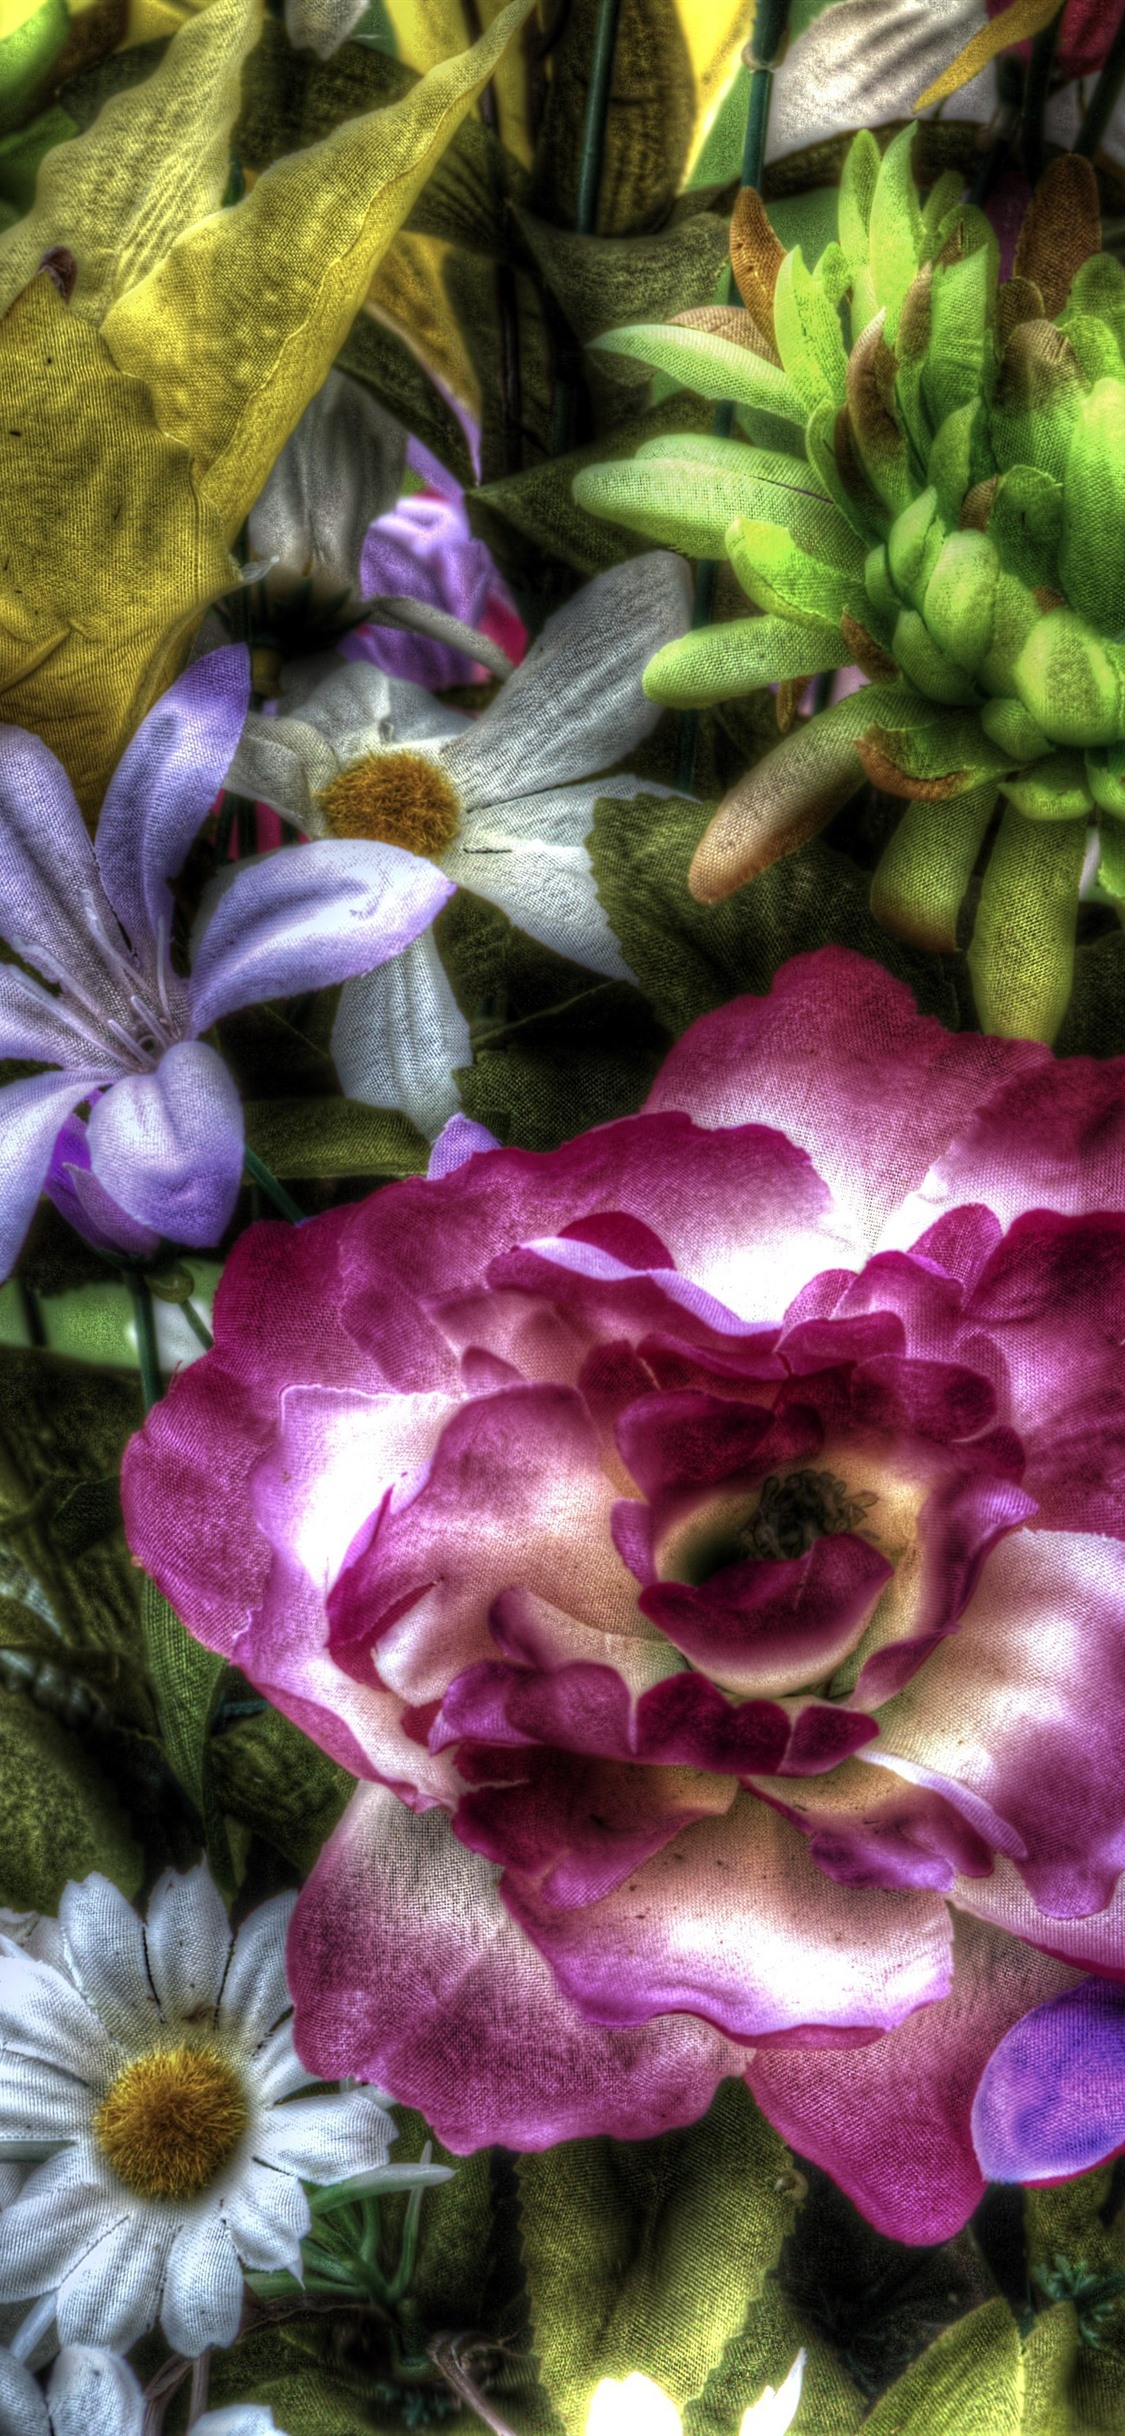 Wallpaper Colorful Artificial Flowers Hdr Style 5120x2880